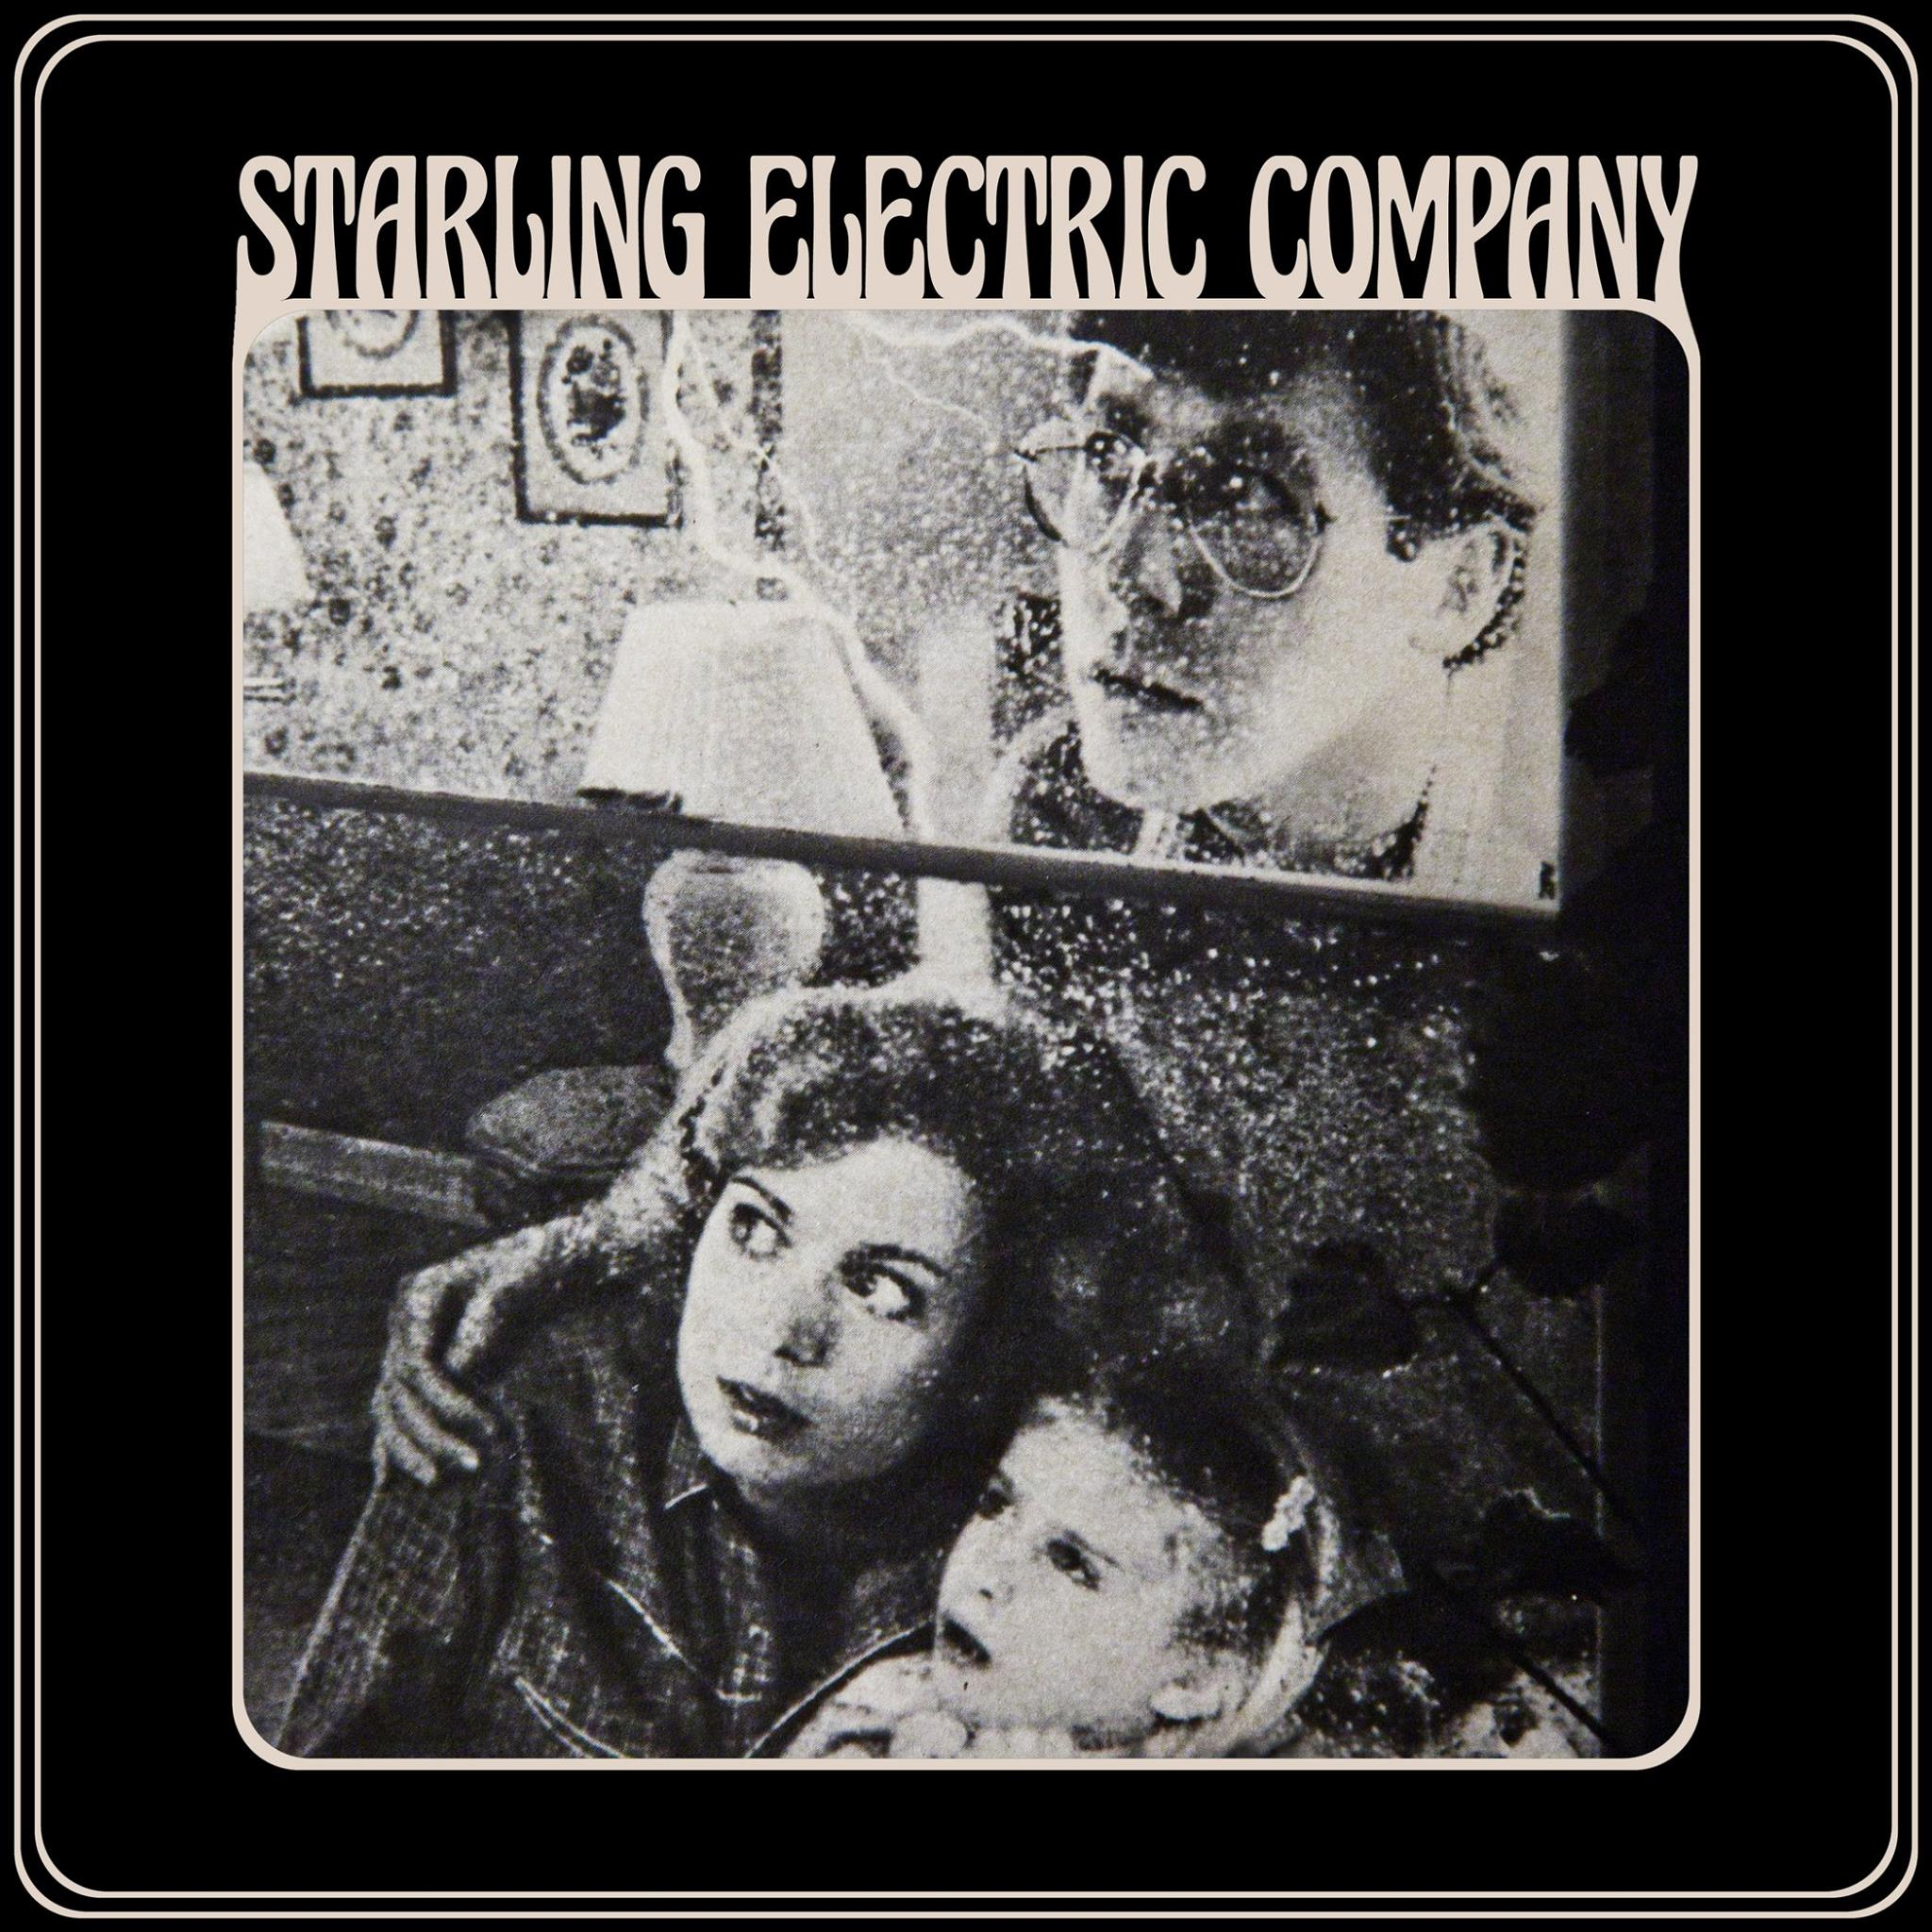 Hey you guys! Starling Electric brings you the power in their new album, Electric Company.